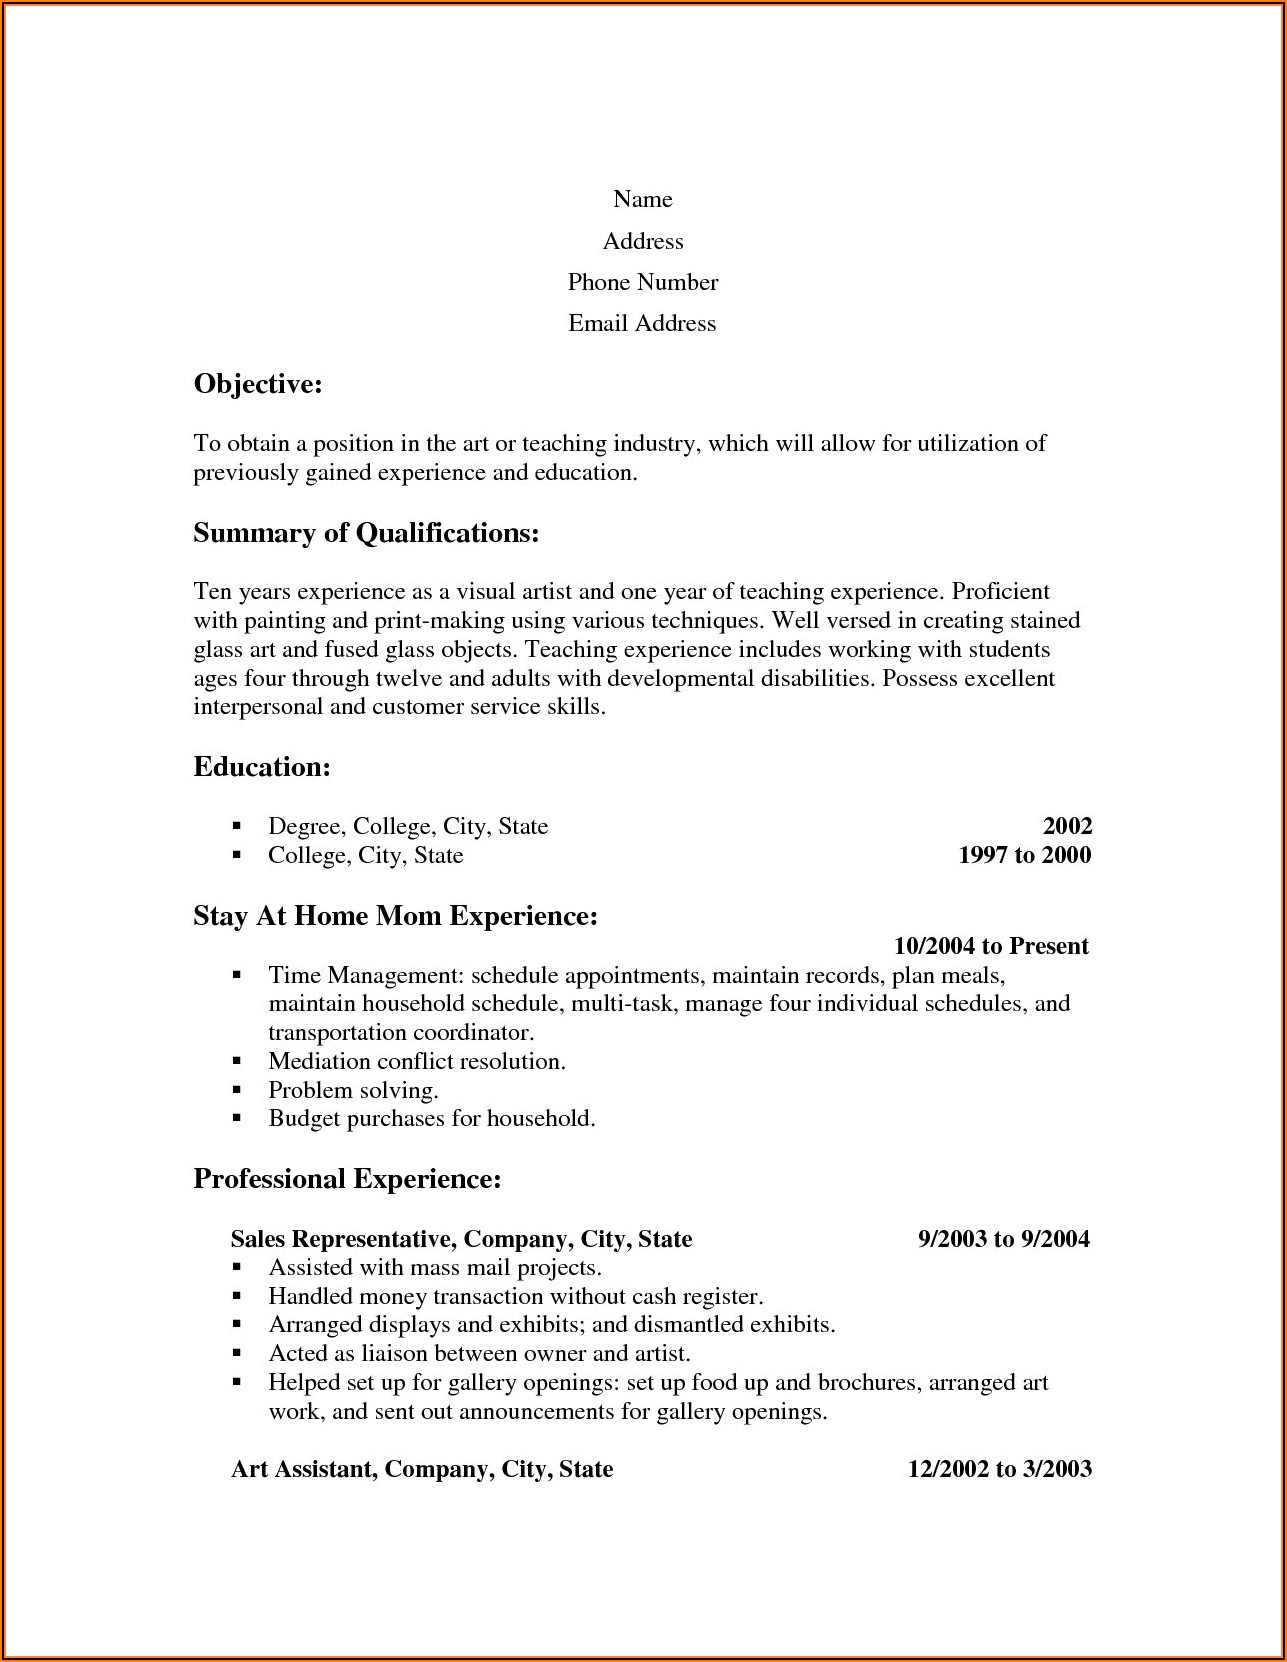 Free Resume Samples For Stay At Home Mom